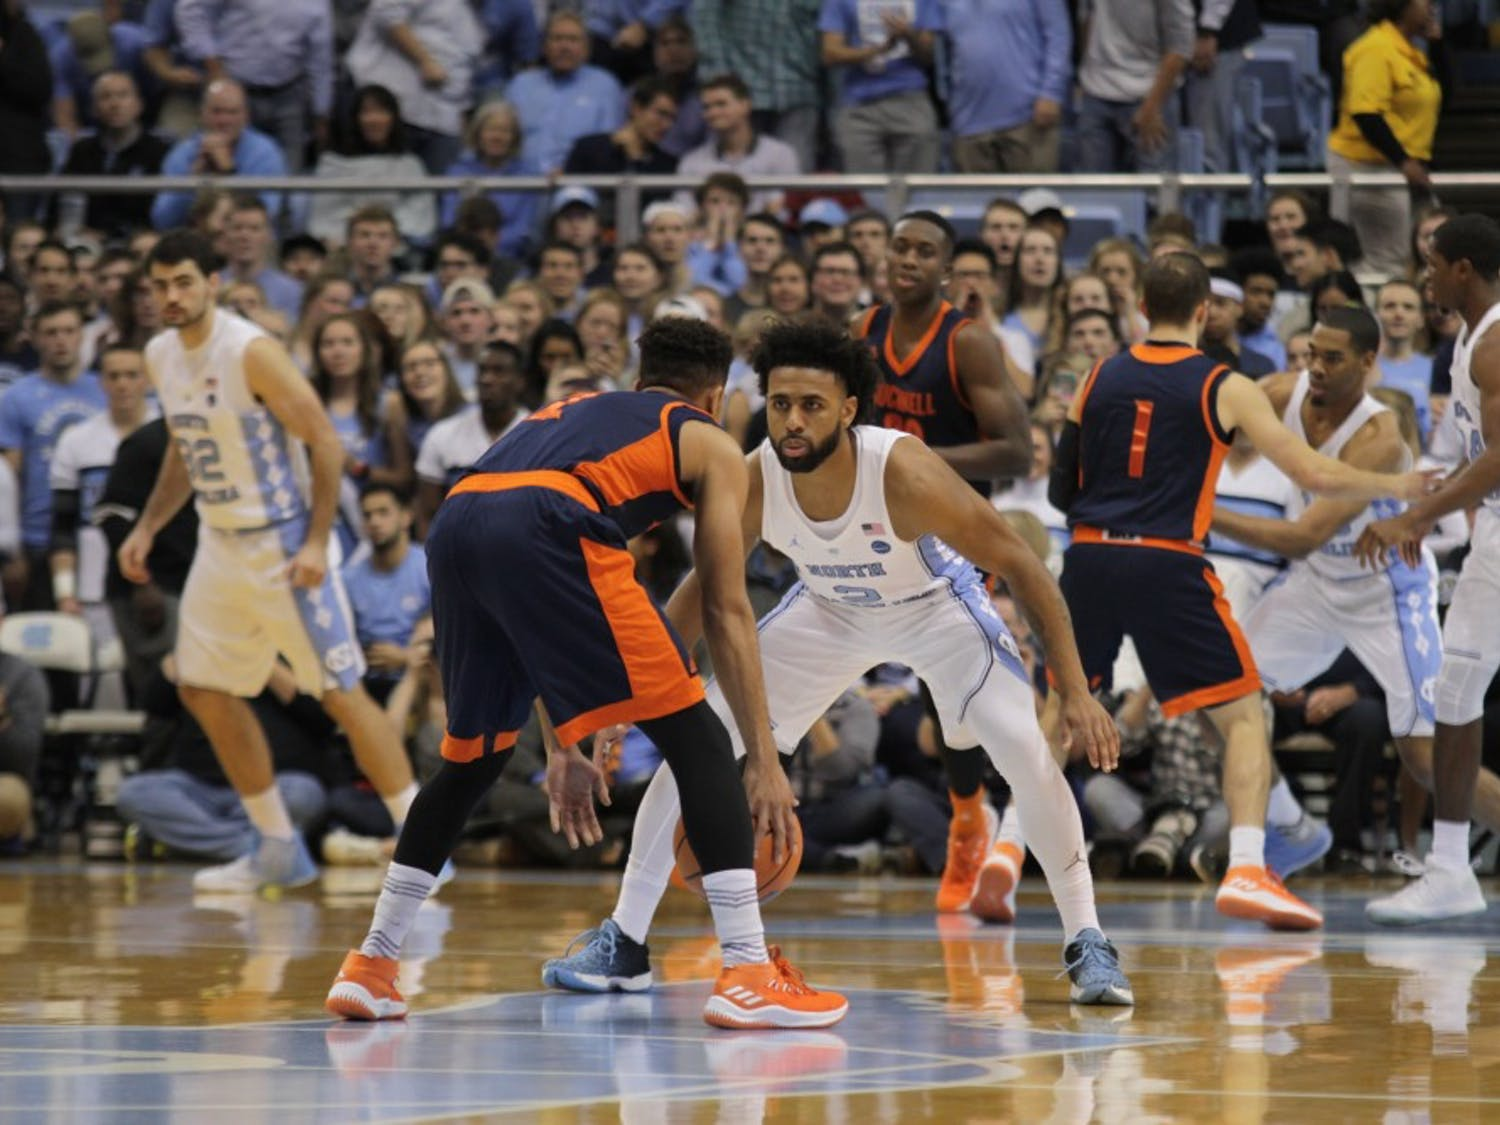 The No. 9 North Carolina men's basketball team defeated Bucknell, 93-81, on Nov. 15 in the Smith Center. Junior Luke Maye led UNC with 20 points and was followed by senior Theo Pinson, who scored a career-high 19. The win was head coach Roy Williams' 400th as North Carolina's head coach and 200th in the Smith Center.